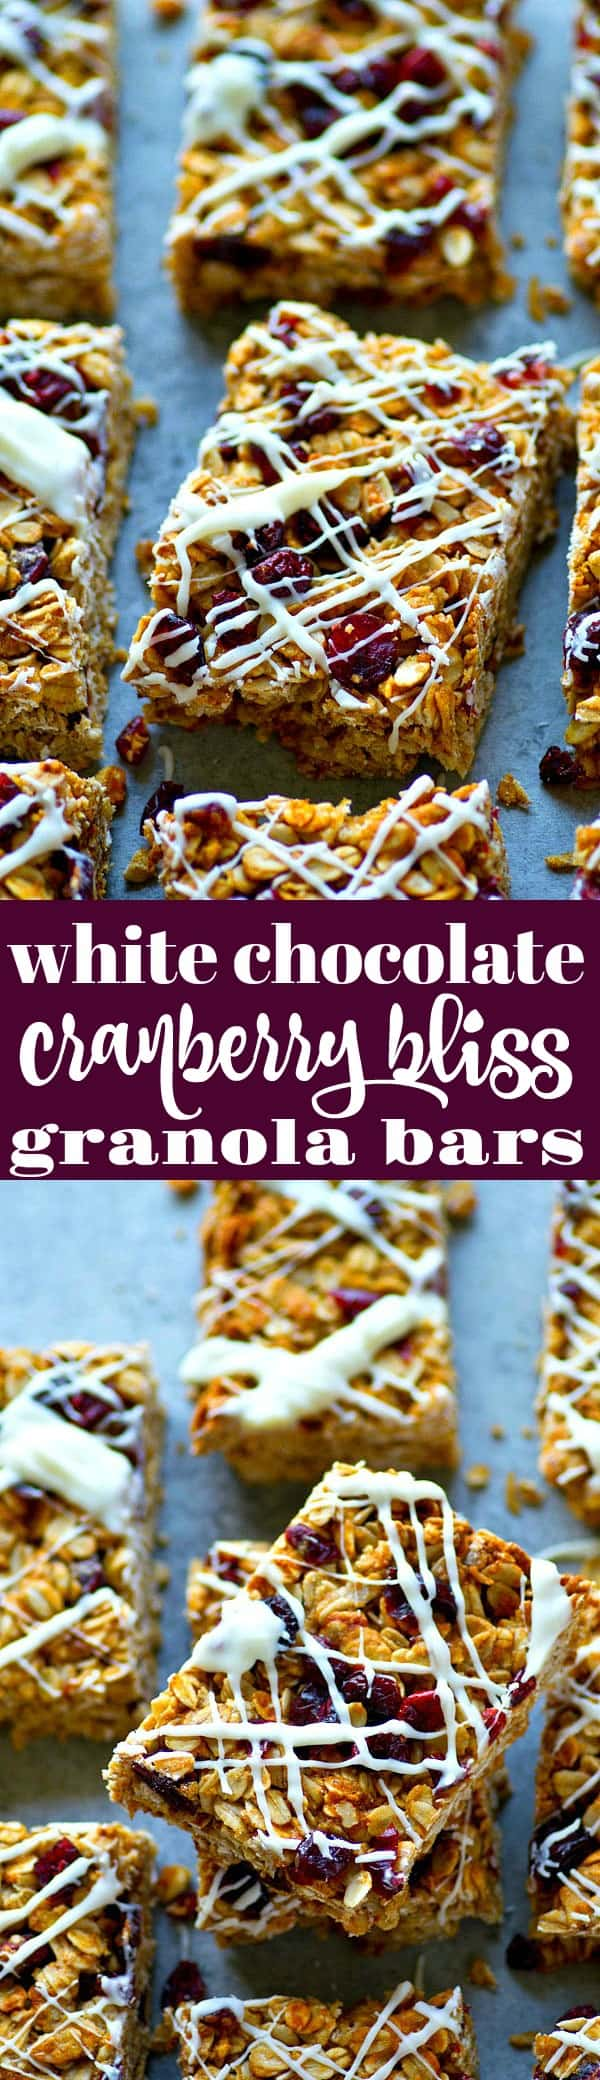 Cranberry bliss bars meet granola bar! These white chocolate cranberry bliss granola bars are so soft, chewy, packed with tangy cranberries, and drizzled with tons of white chocolate!